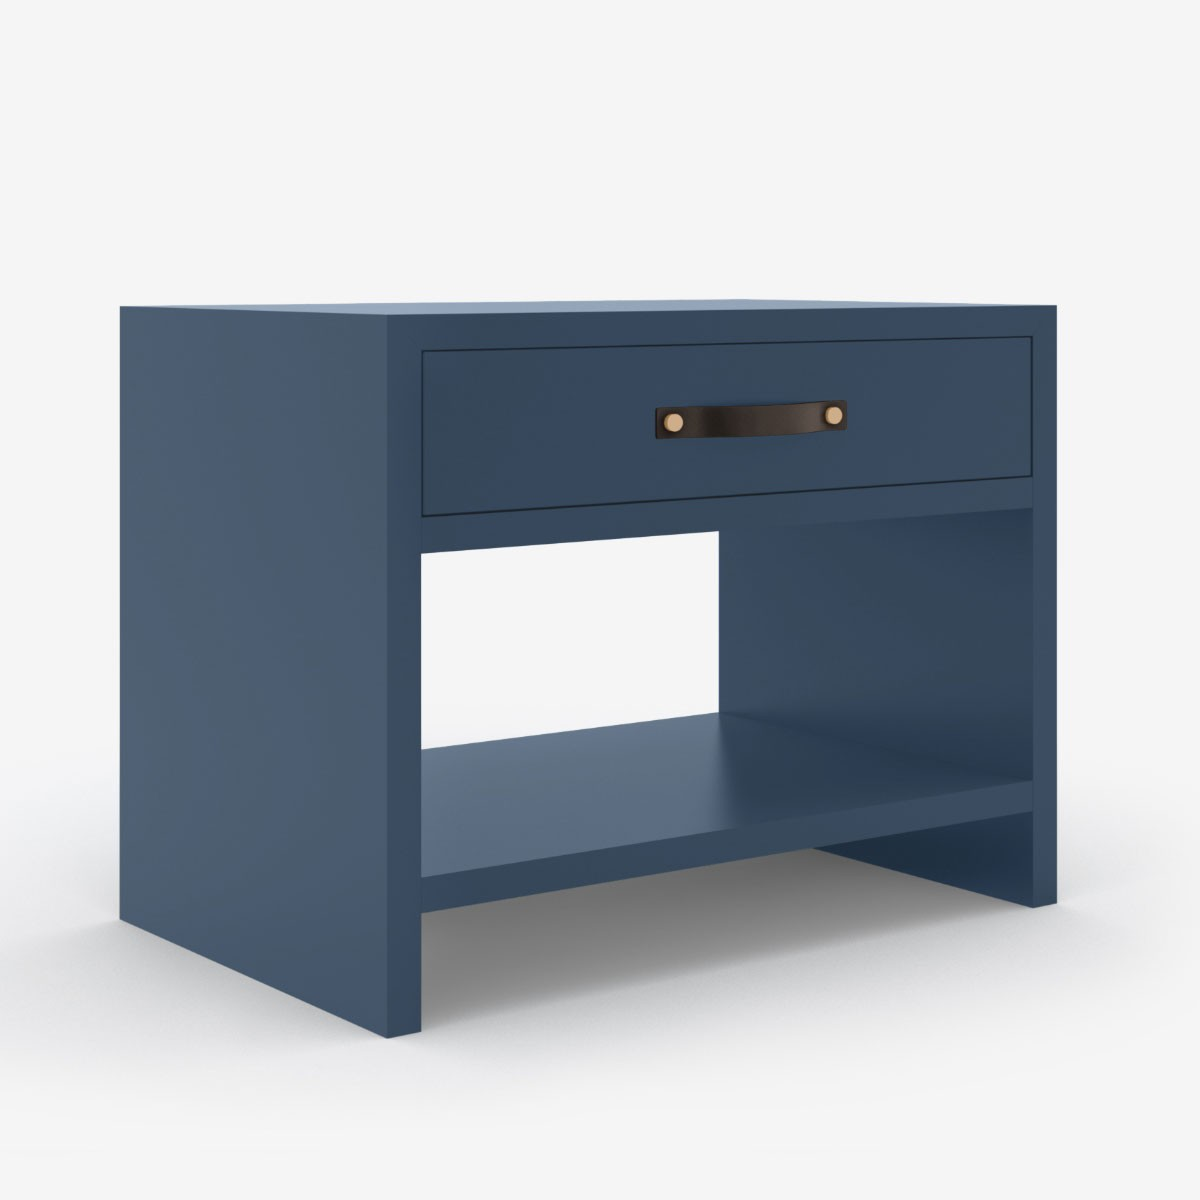 One Drawer Bedside Table - Nordic Blue Lacquer Finish & Leather Strap Handle